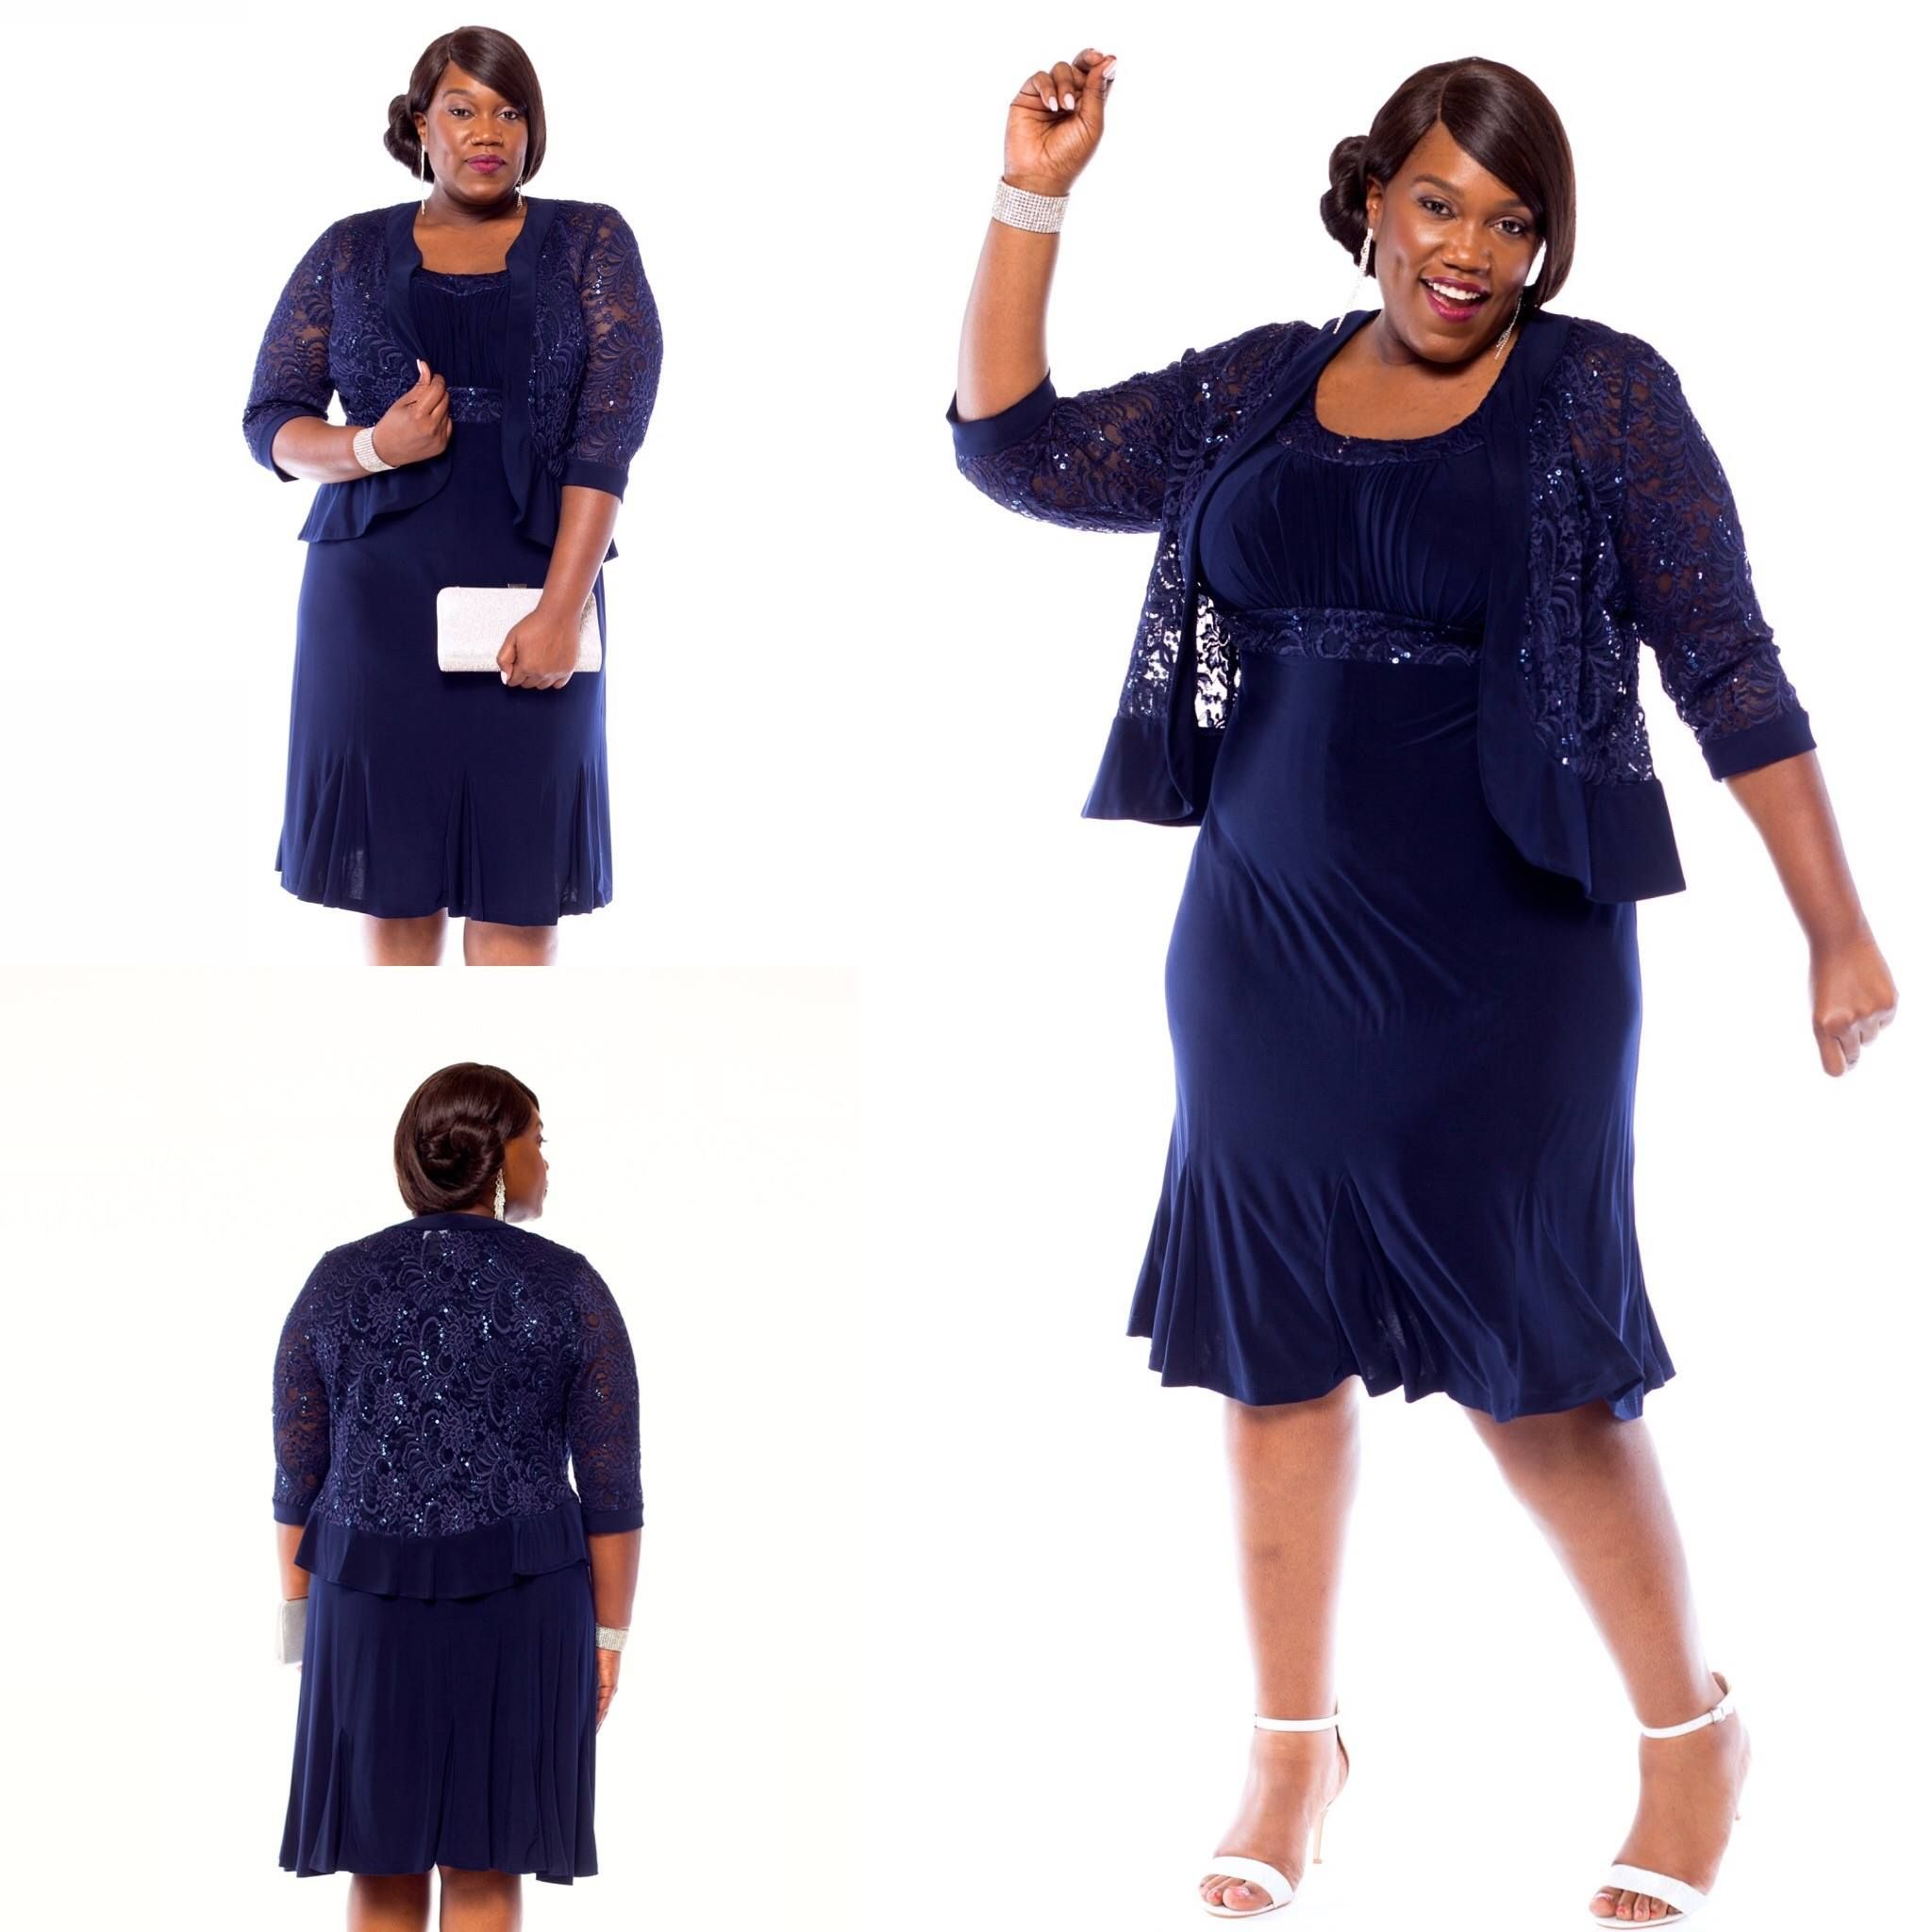 Its your daughters' big day! Our RM Richards #plussize Ruffled Trim Lace Jacket #MotheroftheBride Wedding #dress gets you filled with excitement and pride all day! Available in Mocha, Plum and Navy ( In Plus and missy Sizes) Order this glamorous dress here http://ow.ly/Gu4R30b7Law  #sleektrends #wedding #specialoccasion  . . . . . . #plussizefashion #fashion #houston #houstonfashion #trendy #curvy #curvymodel #plussizeclothing #plussizedress #ootd #easter #motherofthegroom #grandma #glamma…